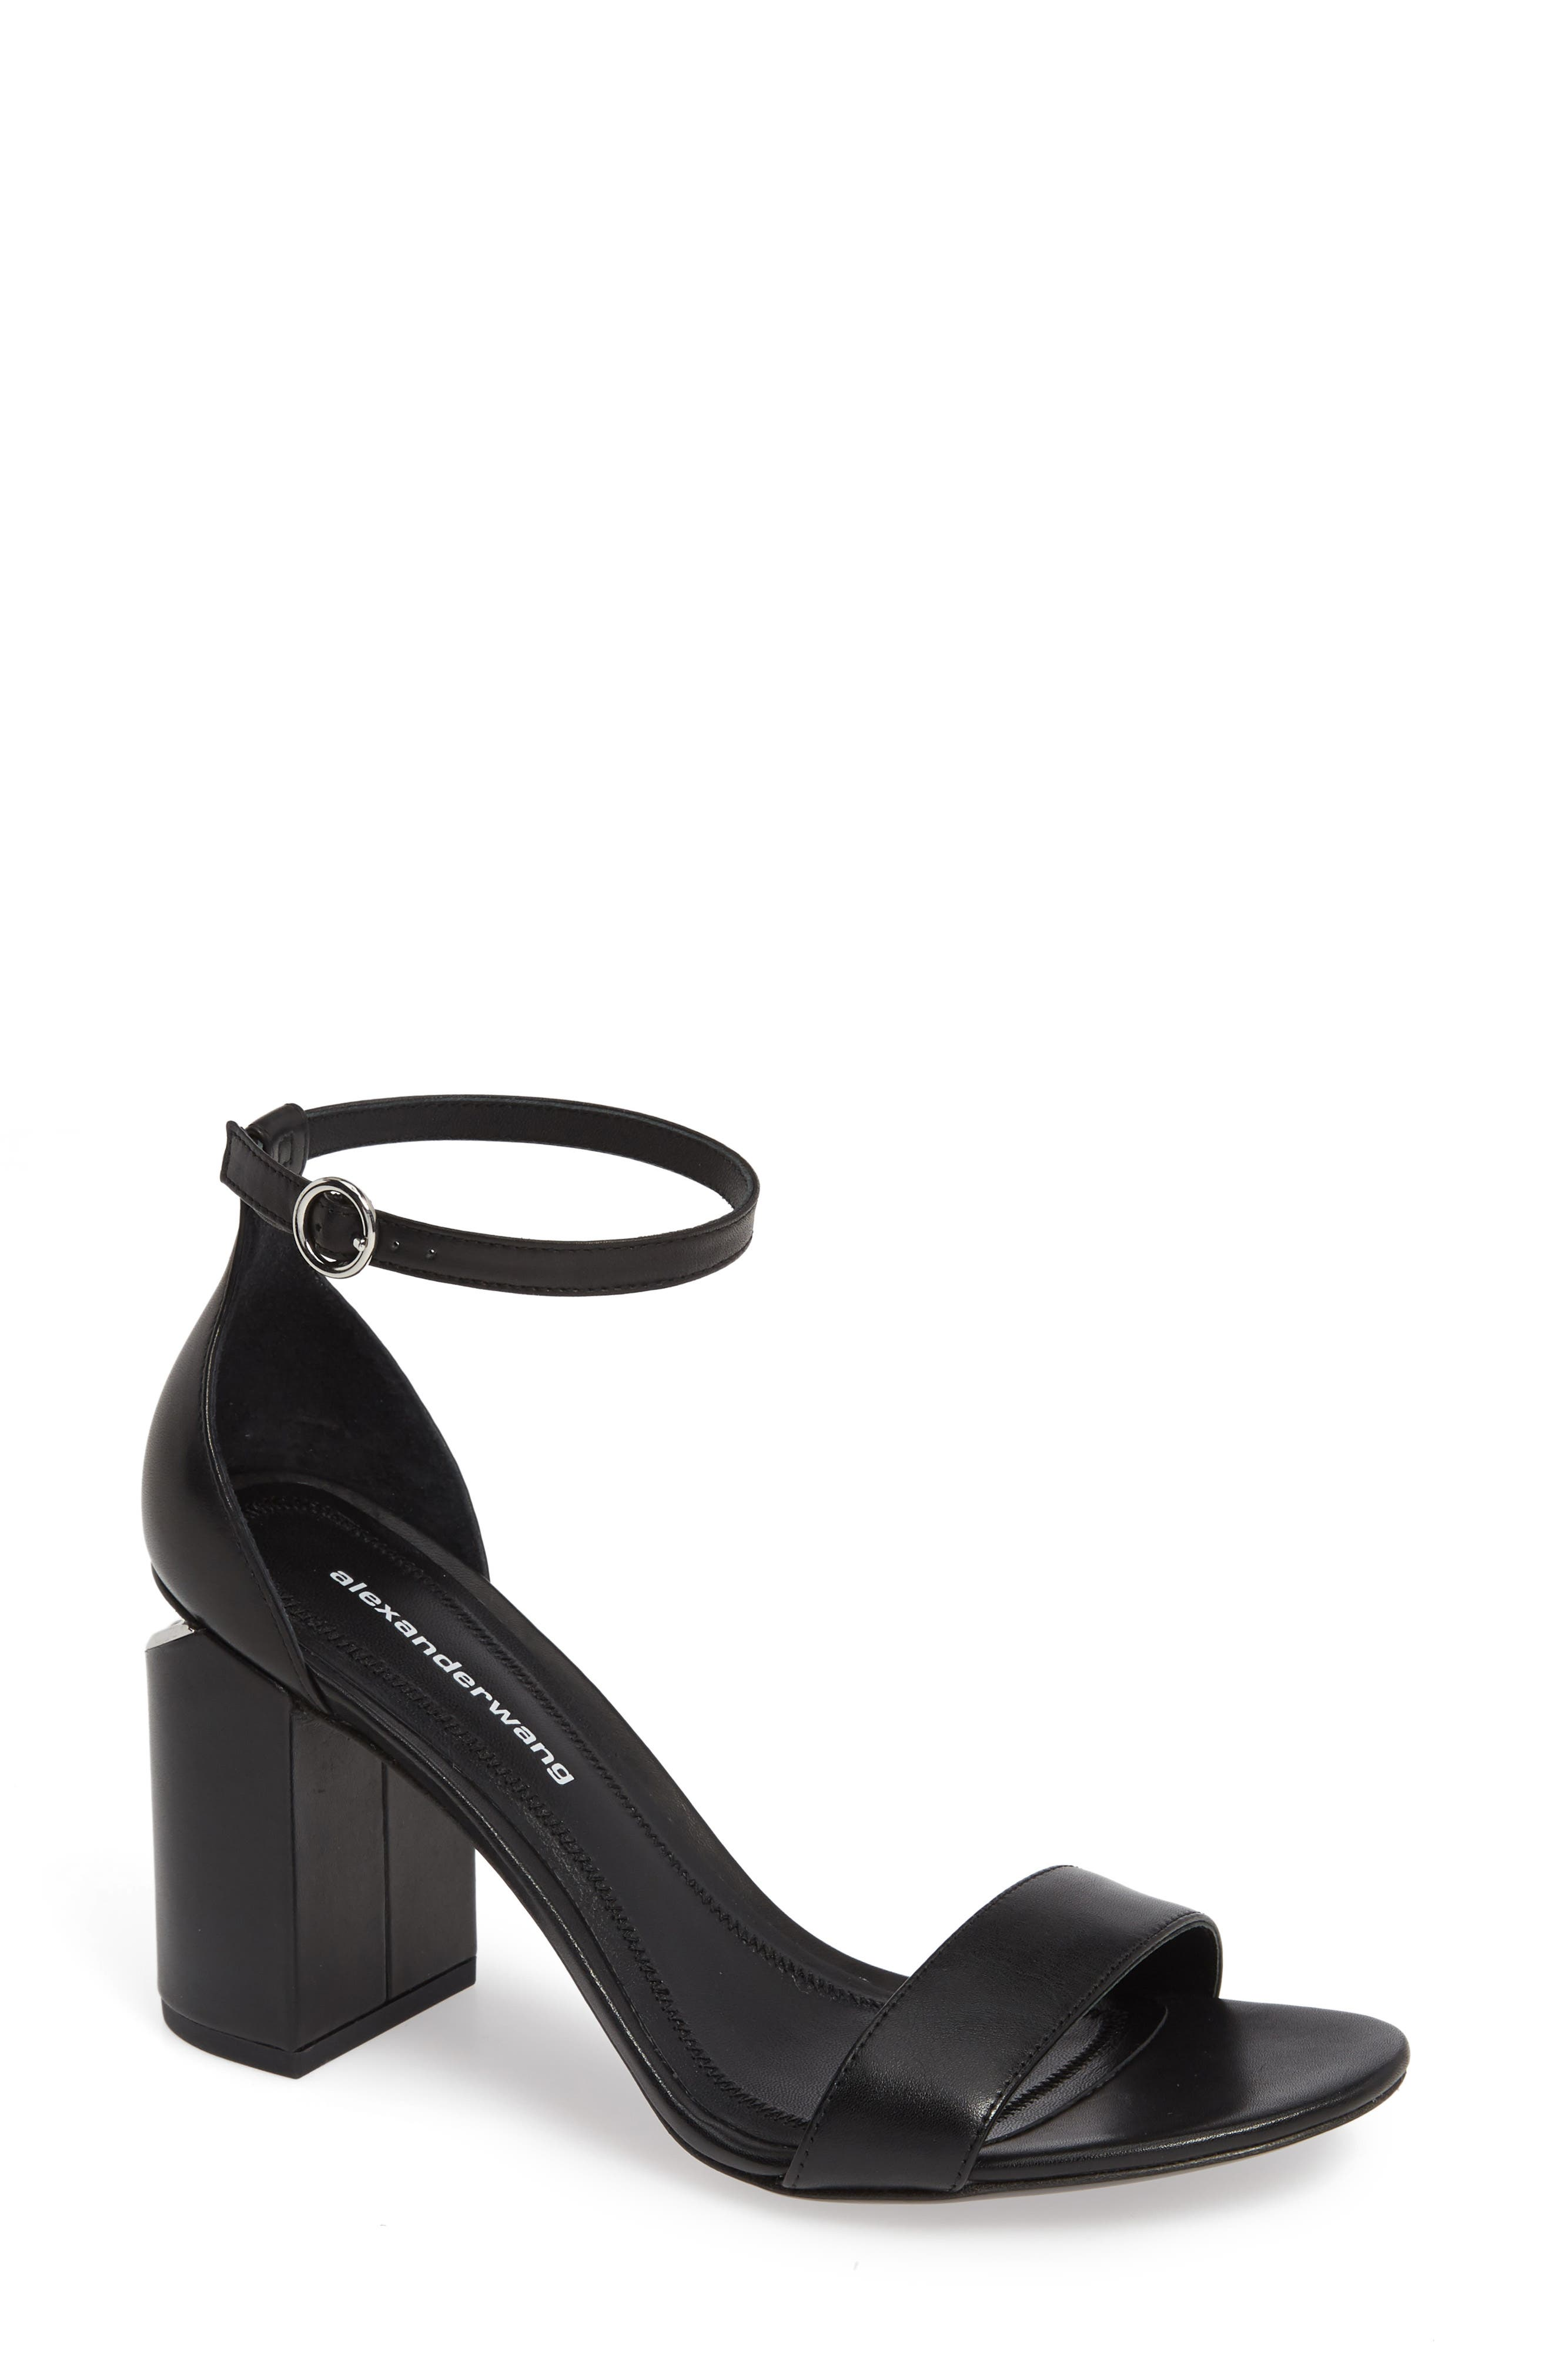 ALEXANDER WANG New Abby Ankle Strap Sandal, Main, color, BLACK